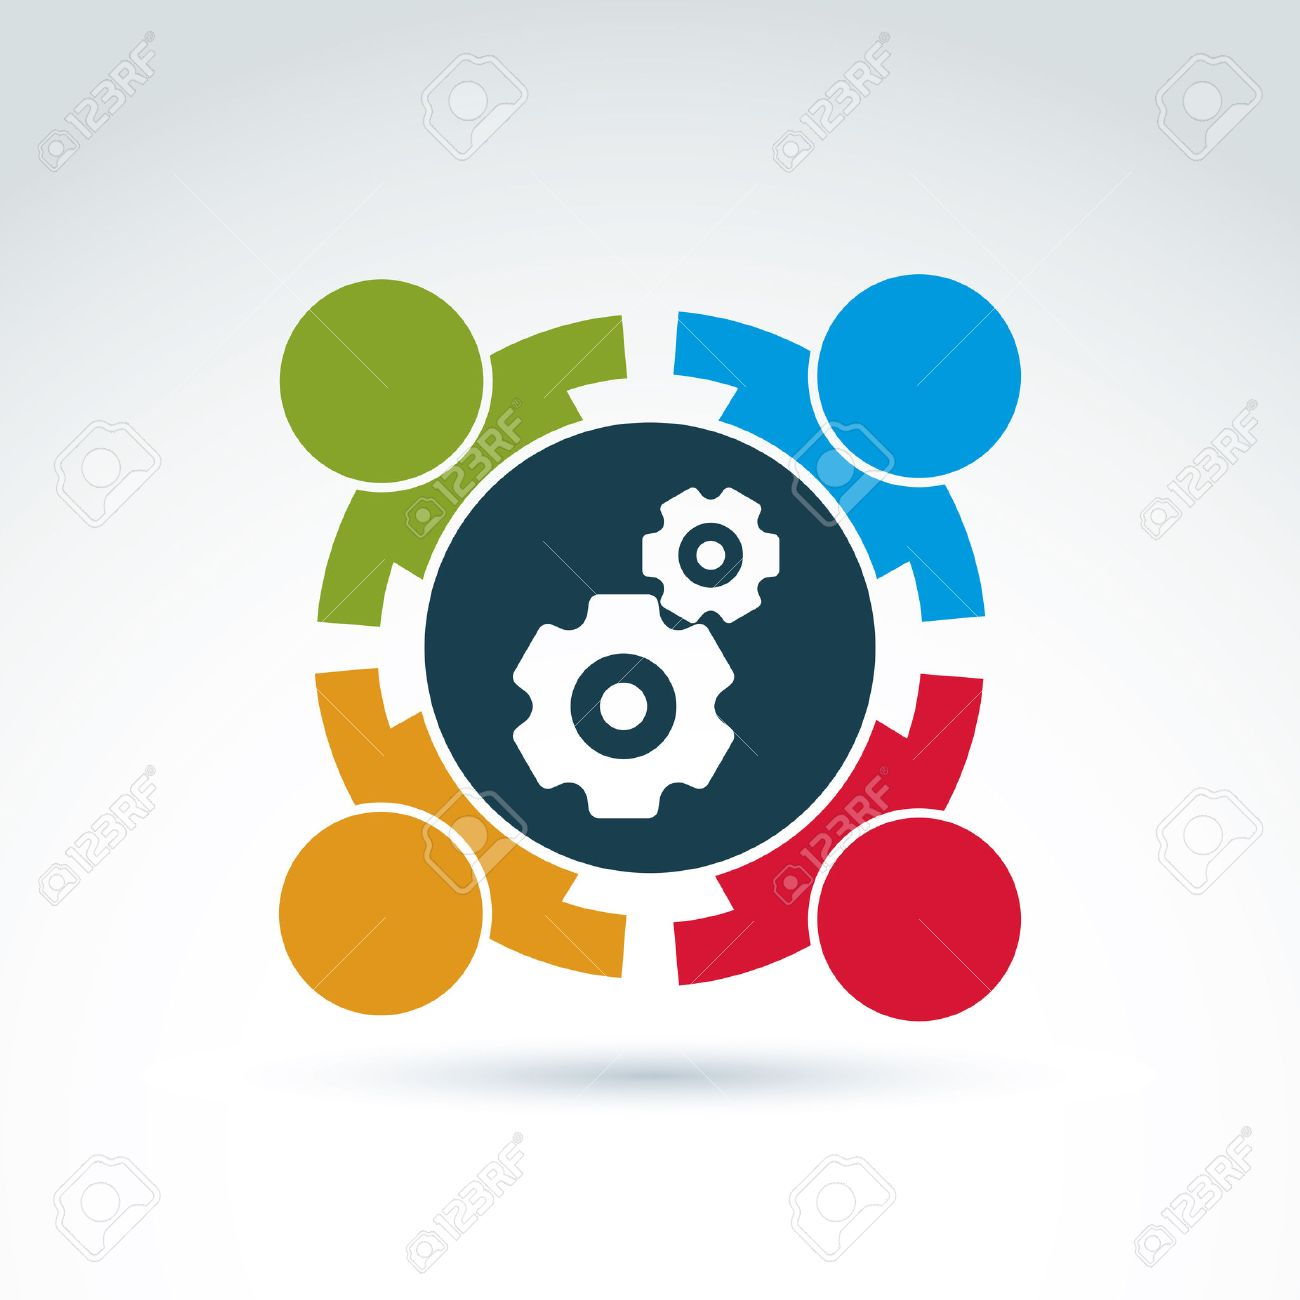 Vector illustration of gears - enterprise system theme, international business strategy concept. Cog-wheels, moving parts and people – components of manufacturing process. Stock Vector - 37804019